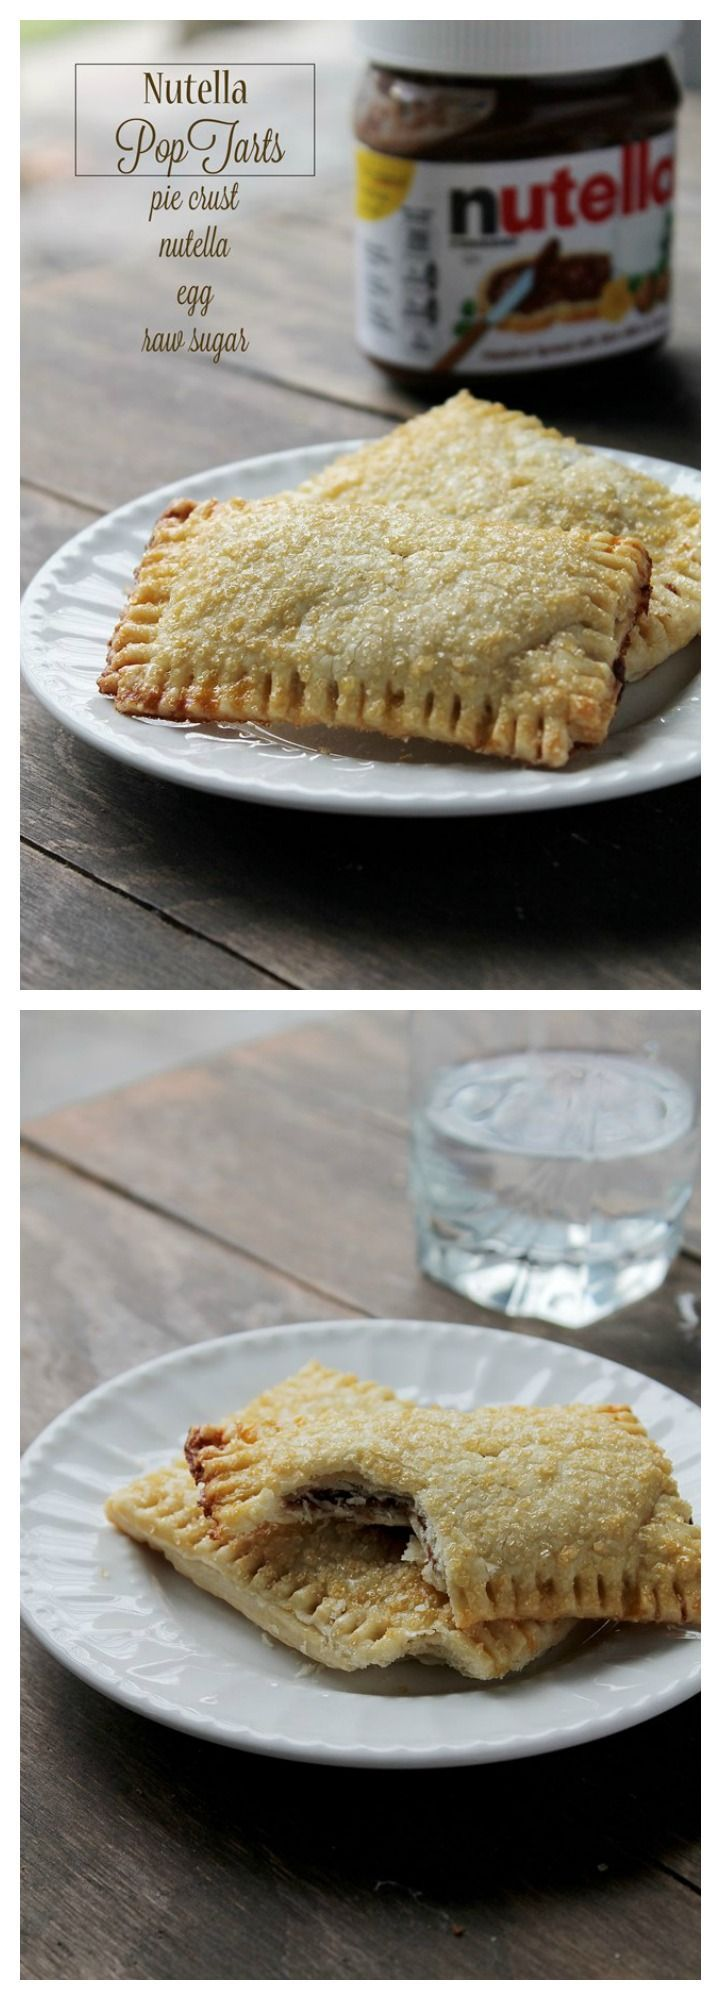 Super easy Nutella Pop Tarts that you can make at home!